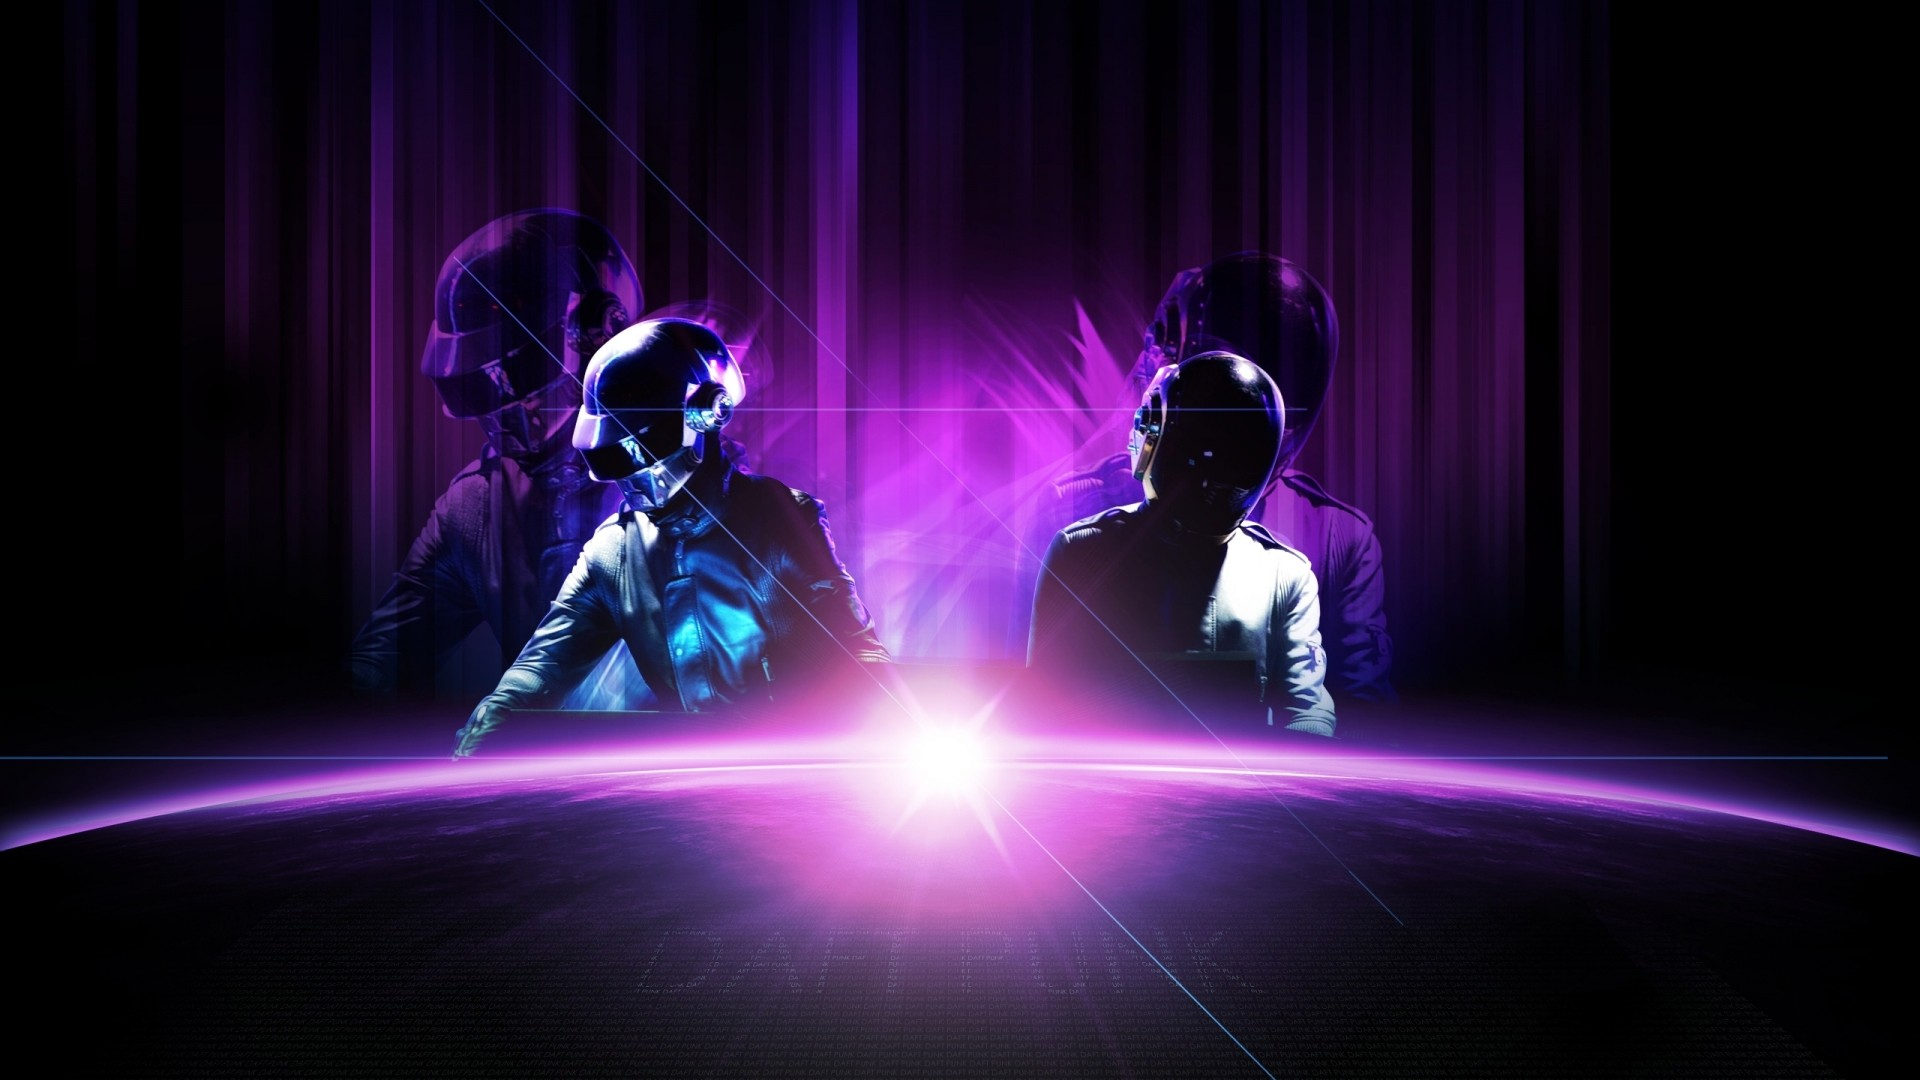 Abstract Music Wallpaper 1920x1080 Abstract Music Daft Punk 1920x1080